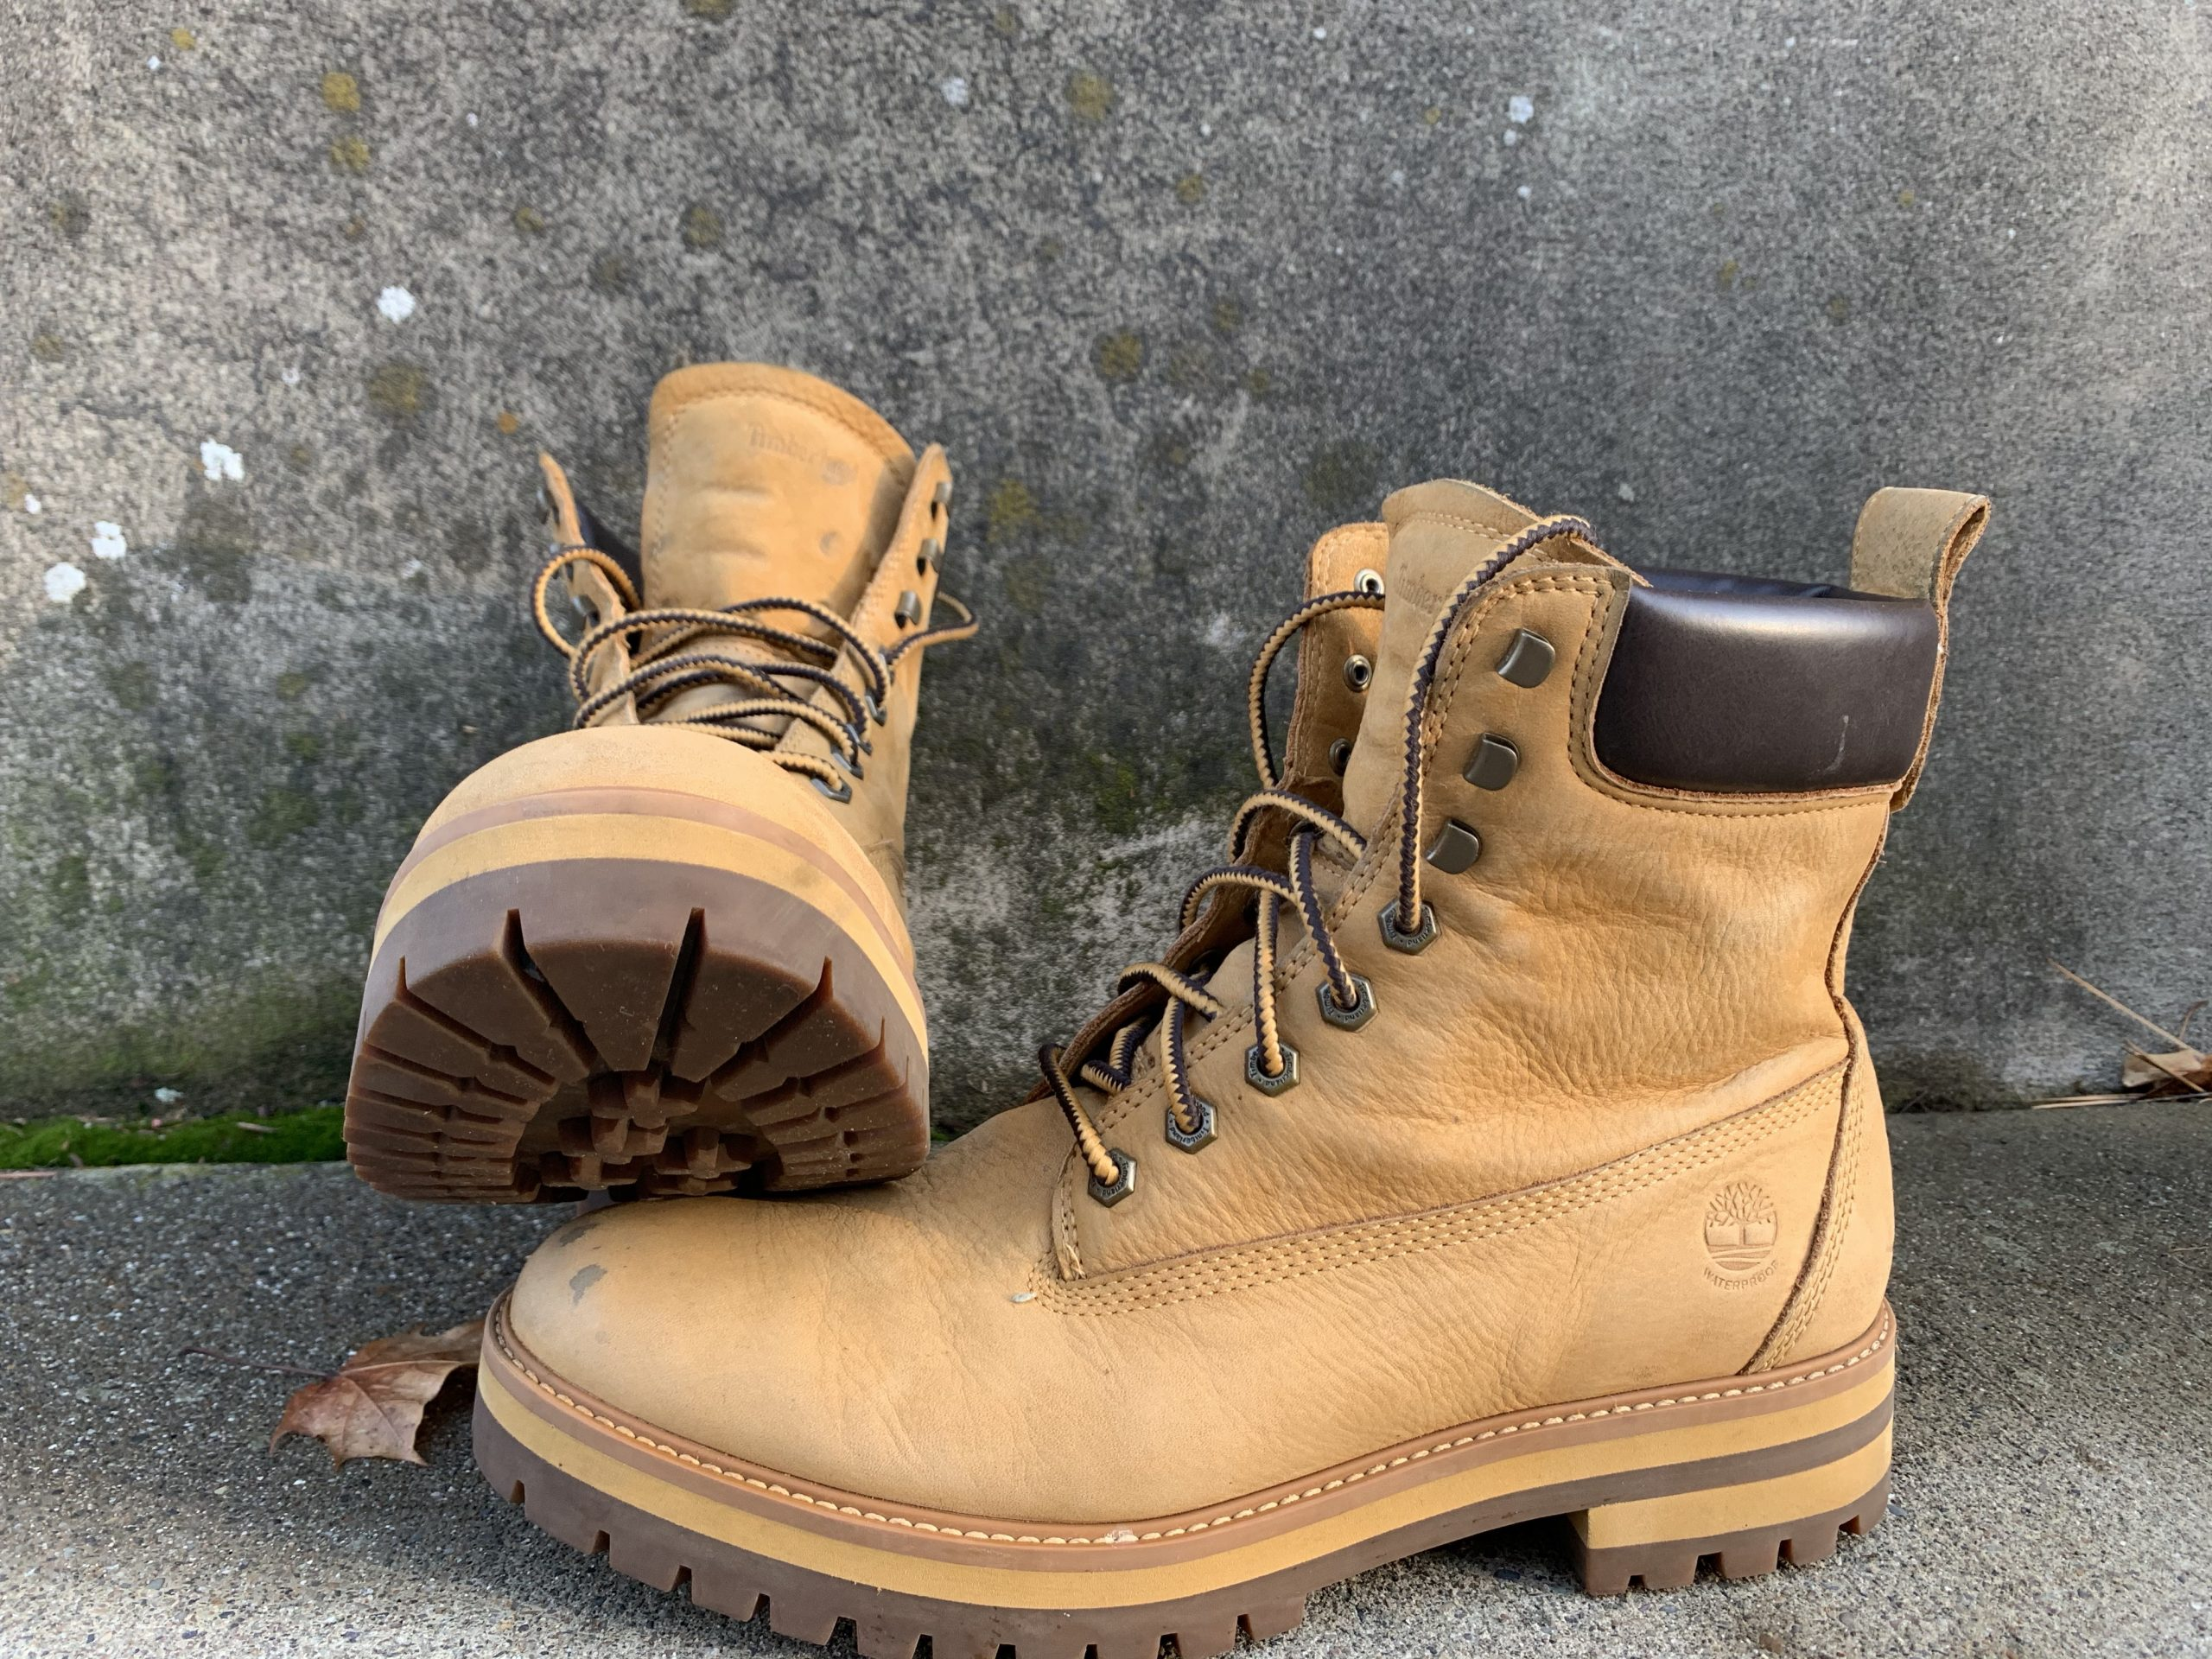 Eléctrico Extracción Pescador  Timberland Courma Guy Waterproof Boots Review - FeedTheHabit.com